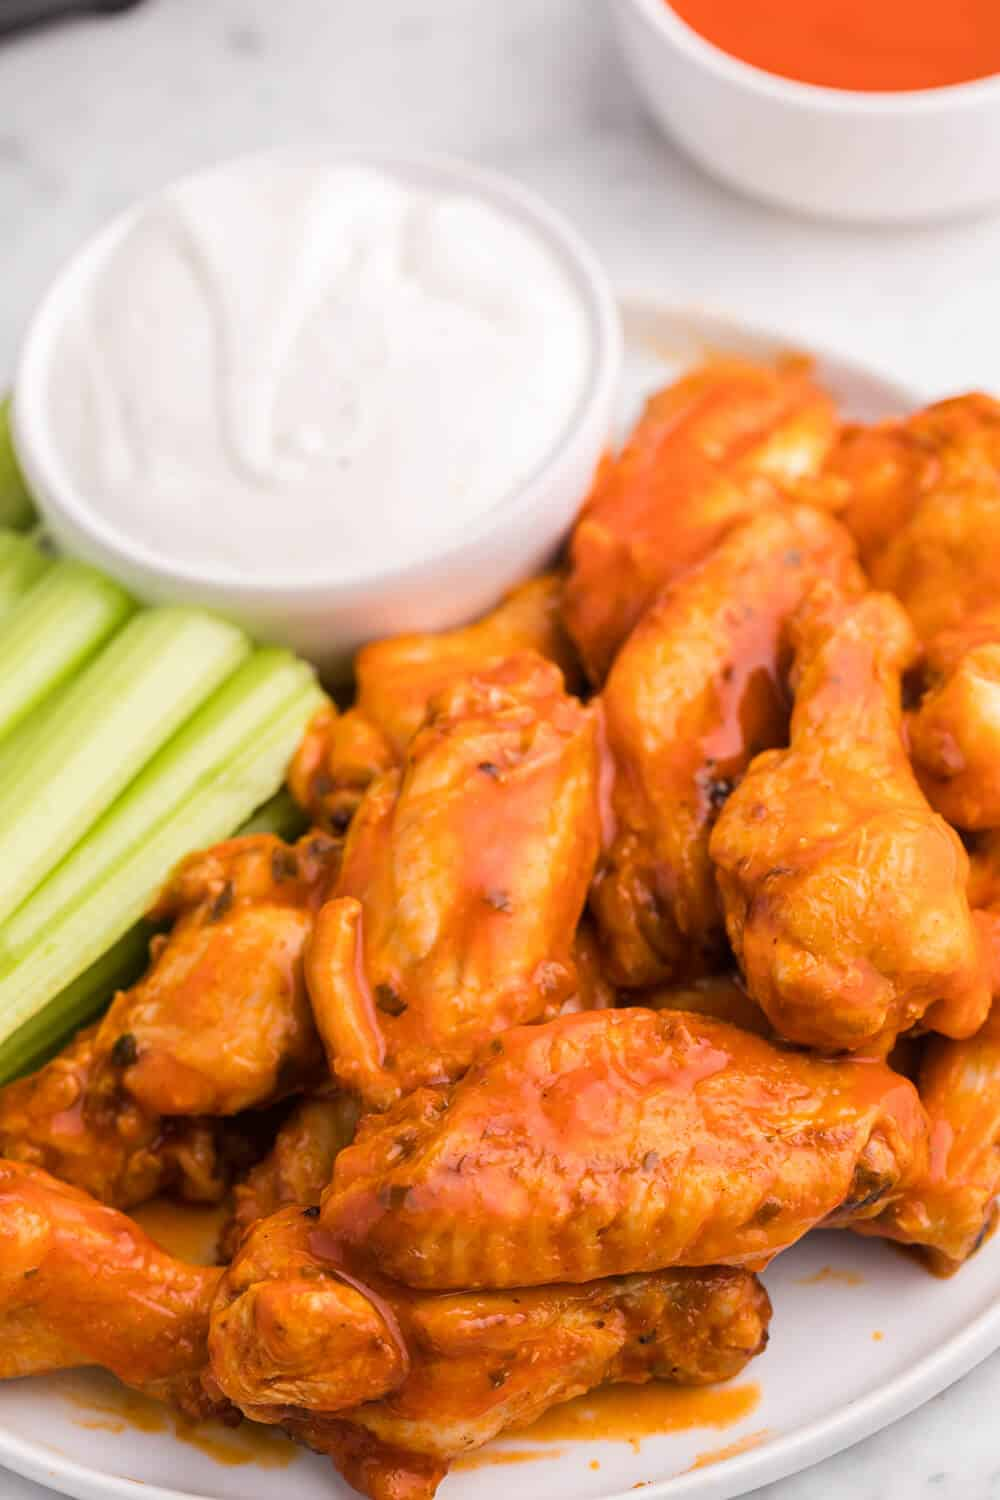 buffalo chicken wings on a plate with celery sticks and dip